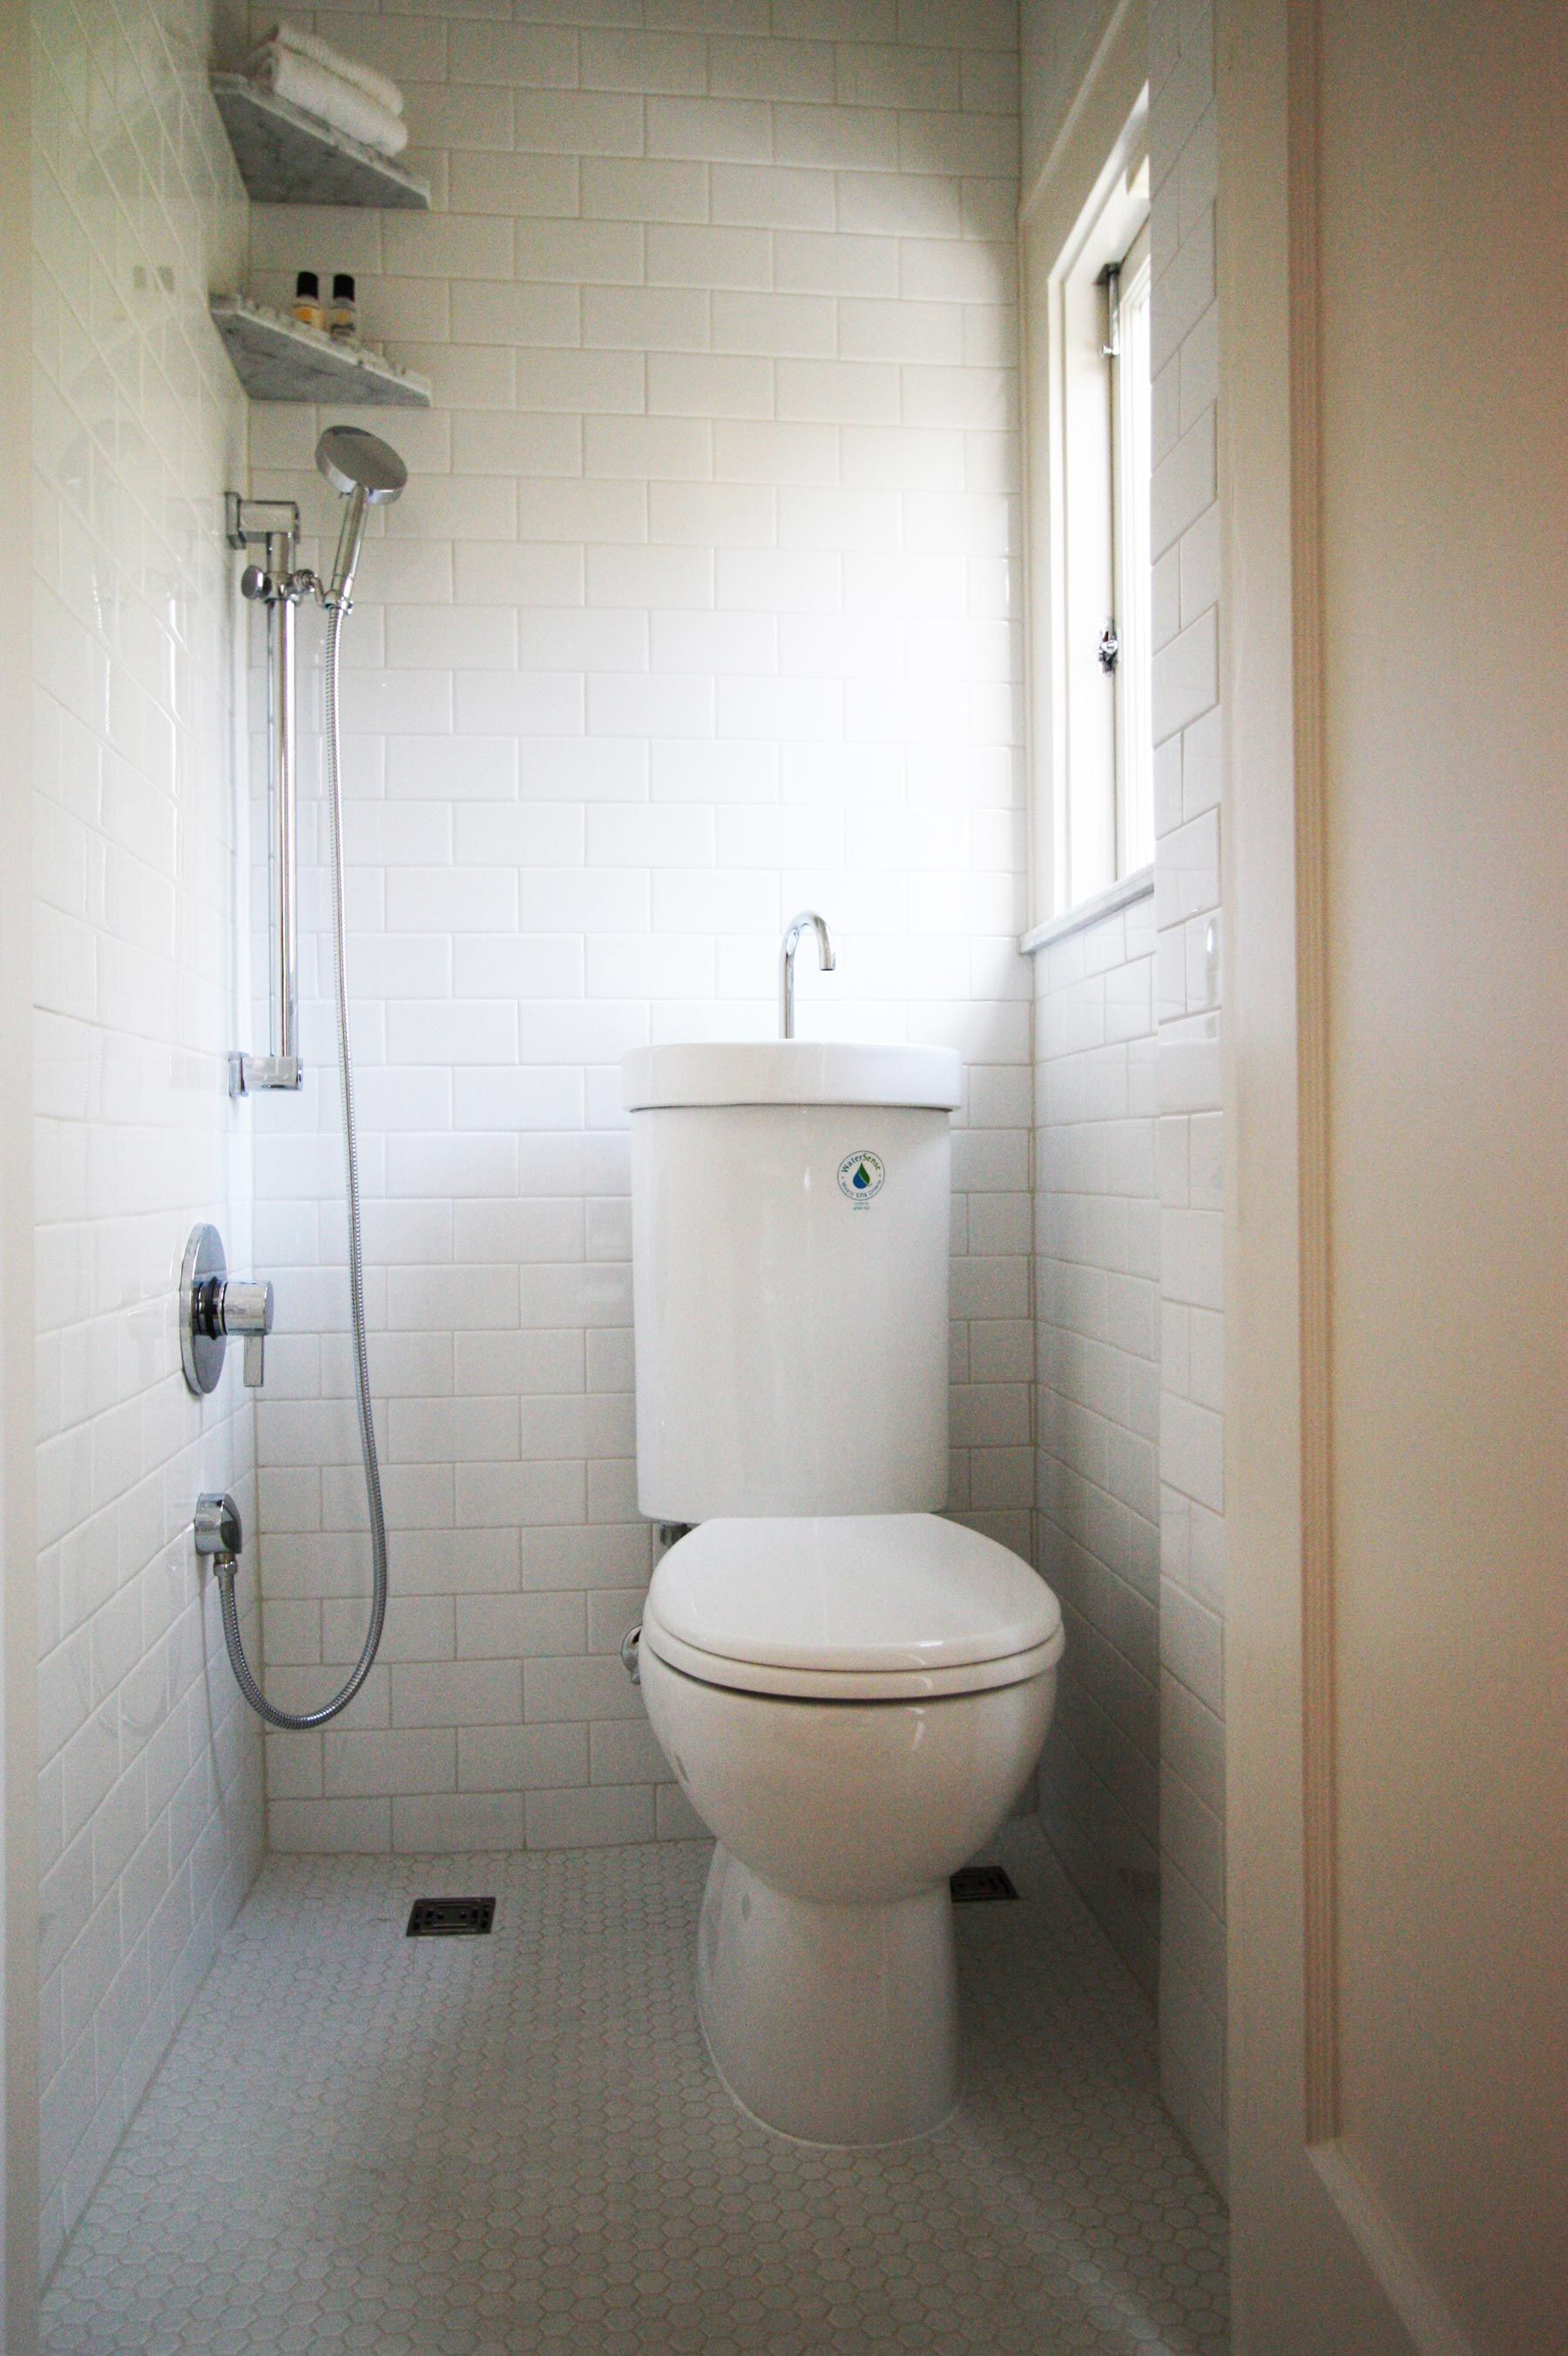 Genial This Bathroom Is 3x3, Sink And Toilet Are One Fixture. Tiny Bathroom  Remodeling Project